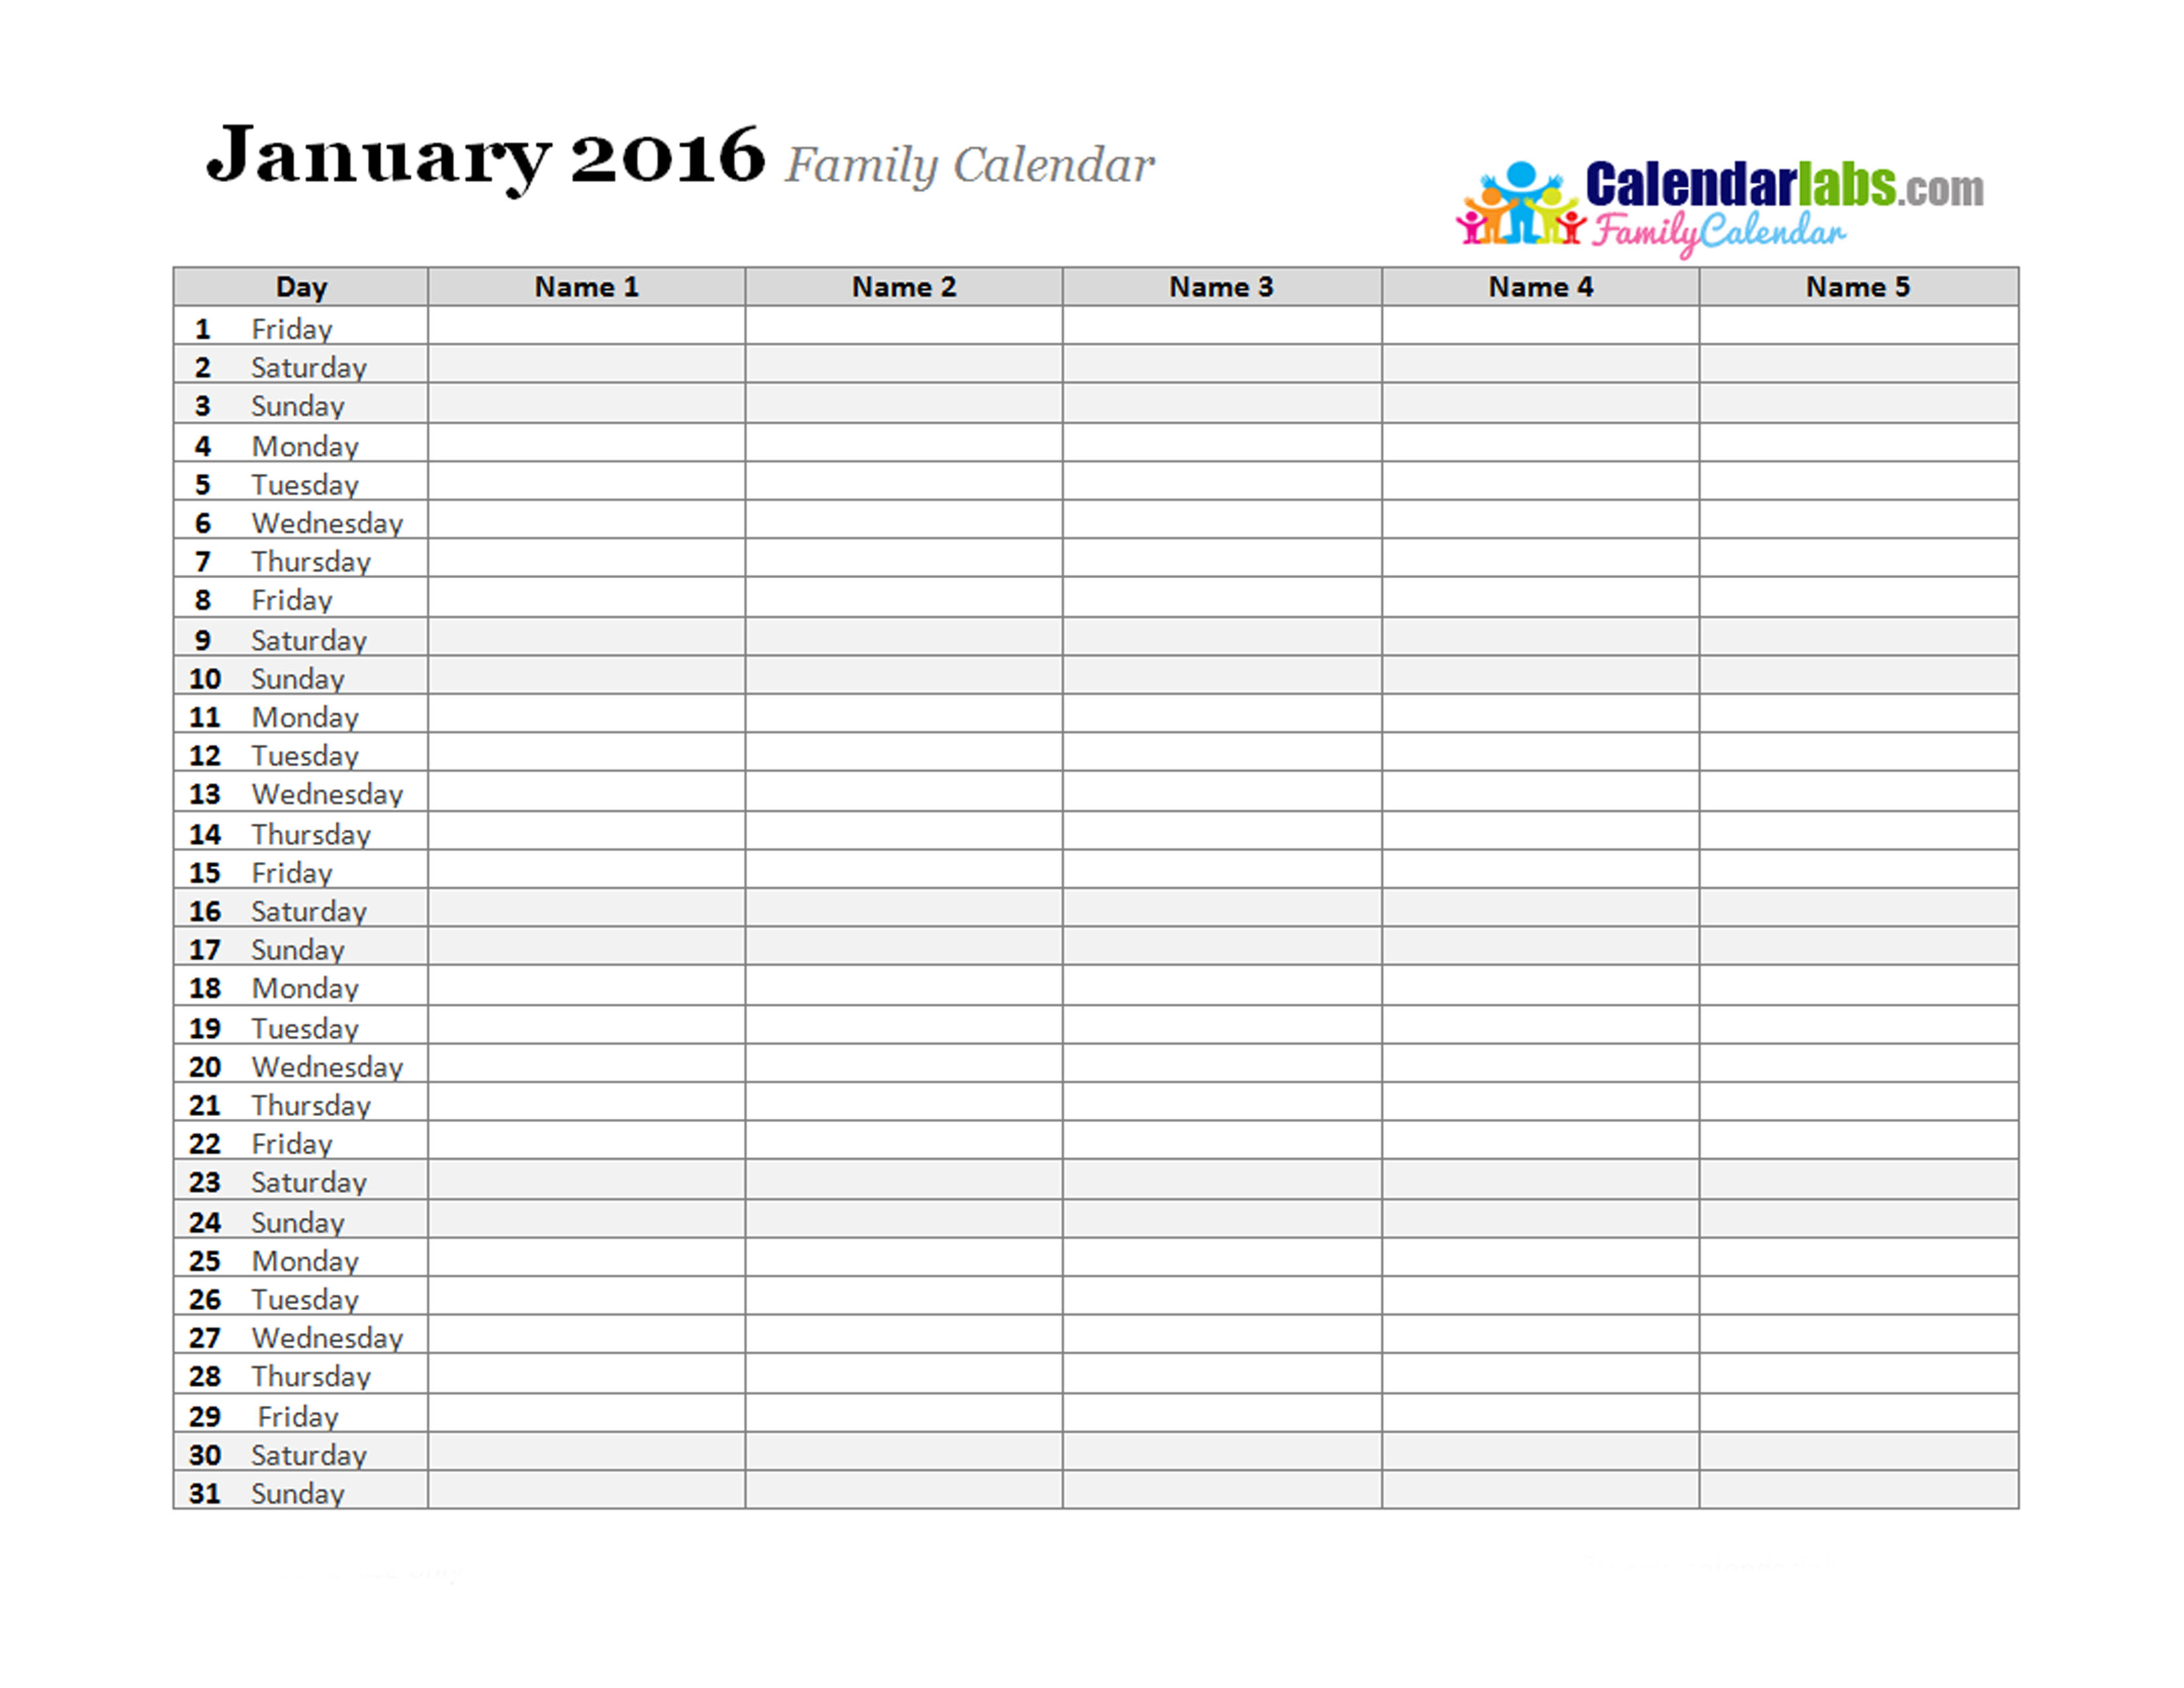 Calendar Planner Software Free : Best images of family monthly calendar printable